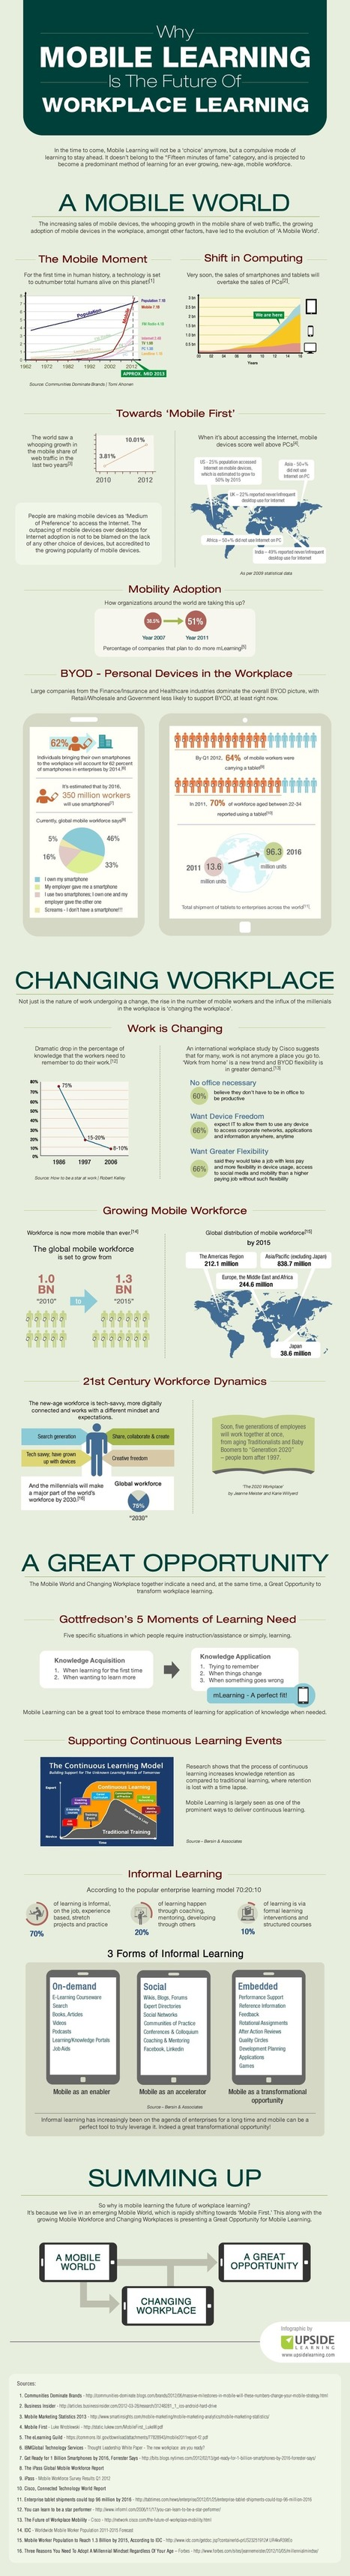 [Infografía] Why mobile learning is the future ... | Social Media (network, technology, blog, community, virtual reality, etc...) | Scoop.it